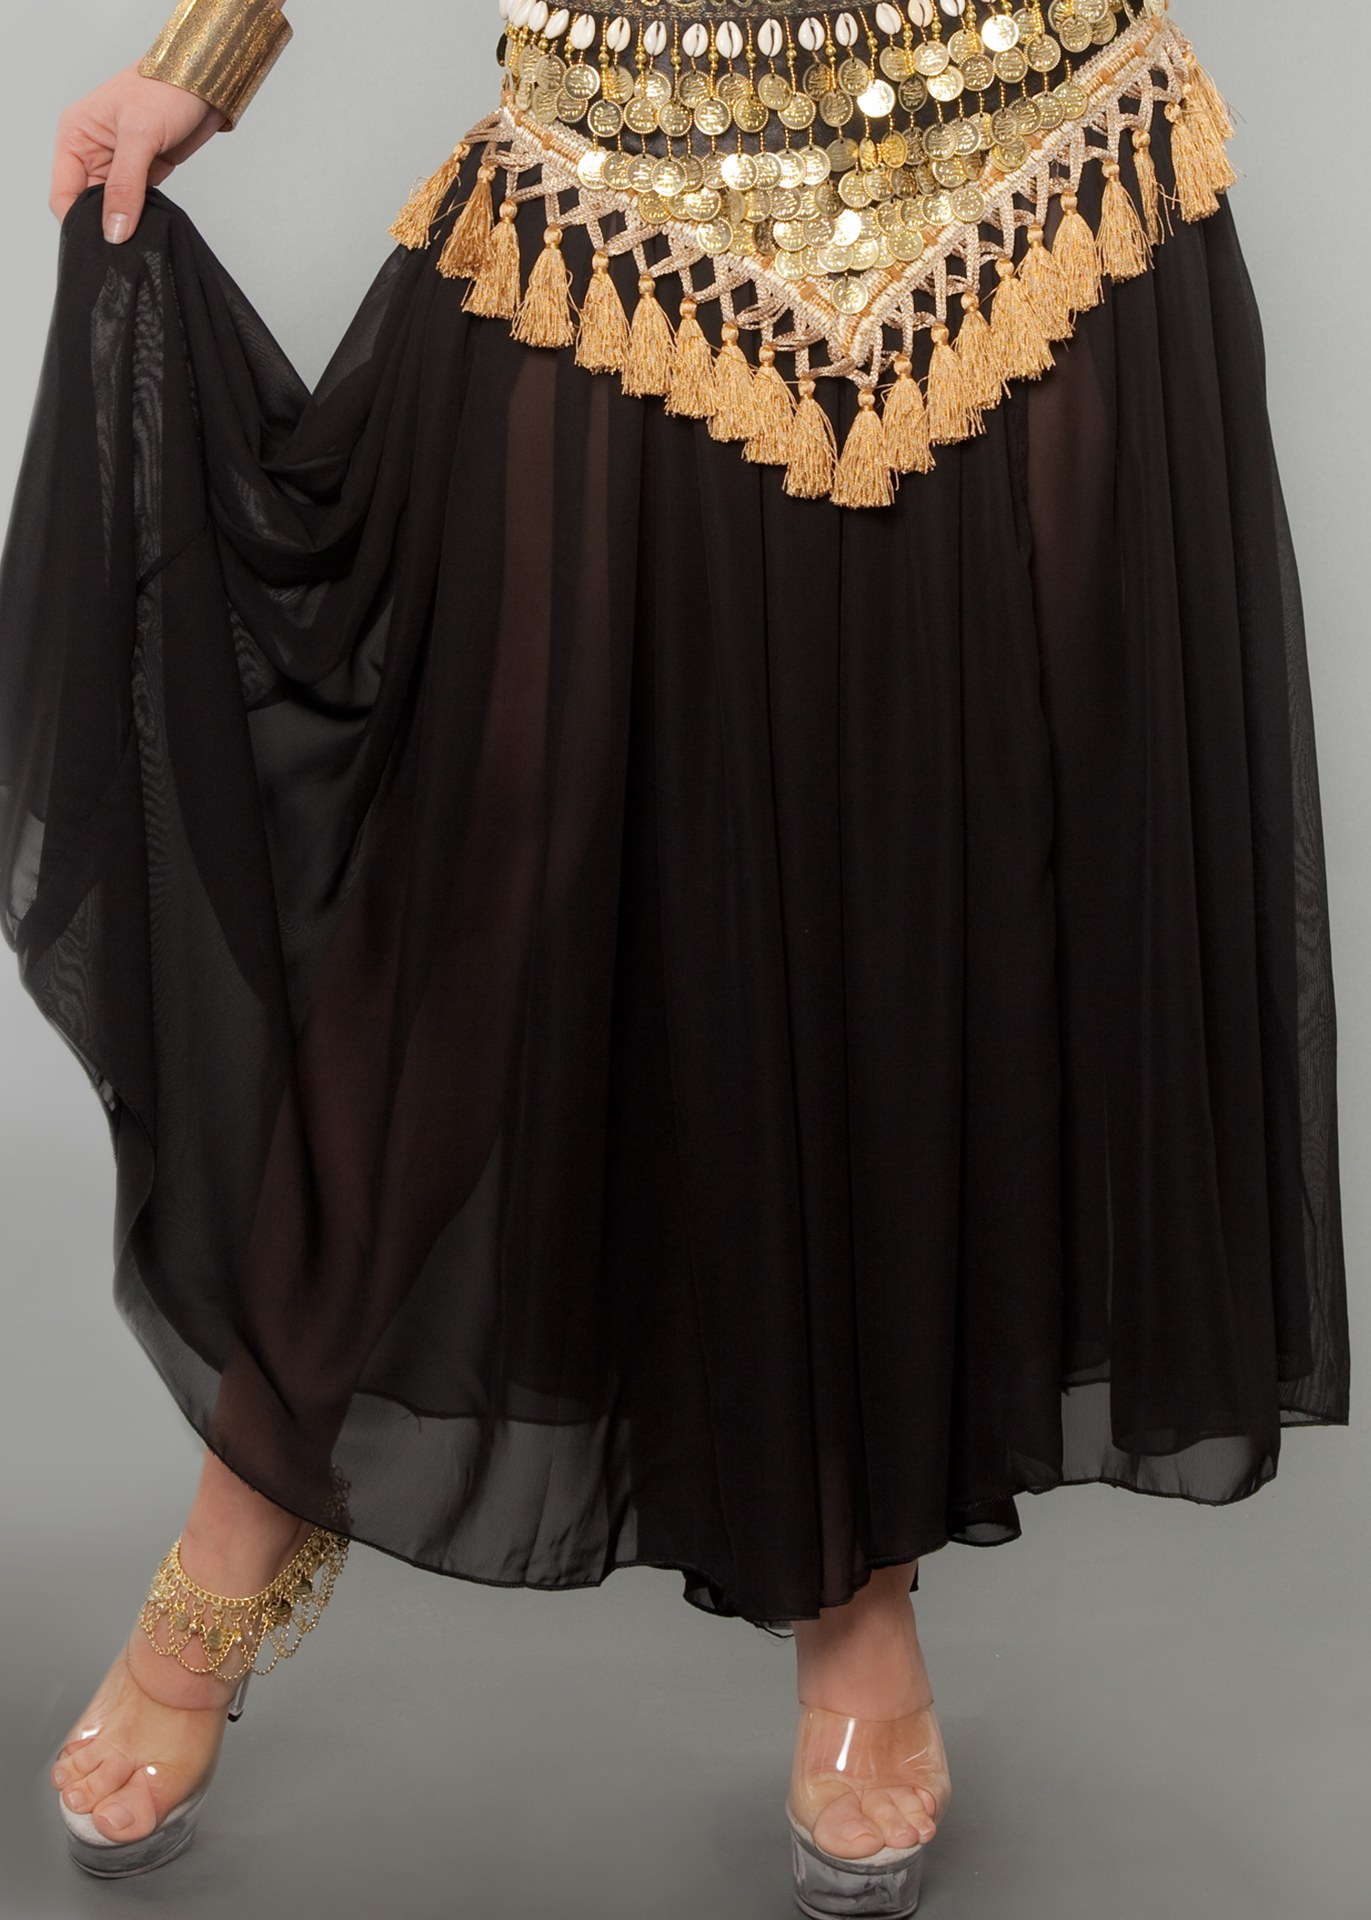 Belly Dancer Full Skirt (COLORS: R-Bk-Pr-Wh-Roy-Li: Black)